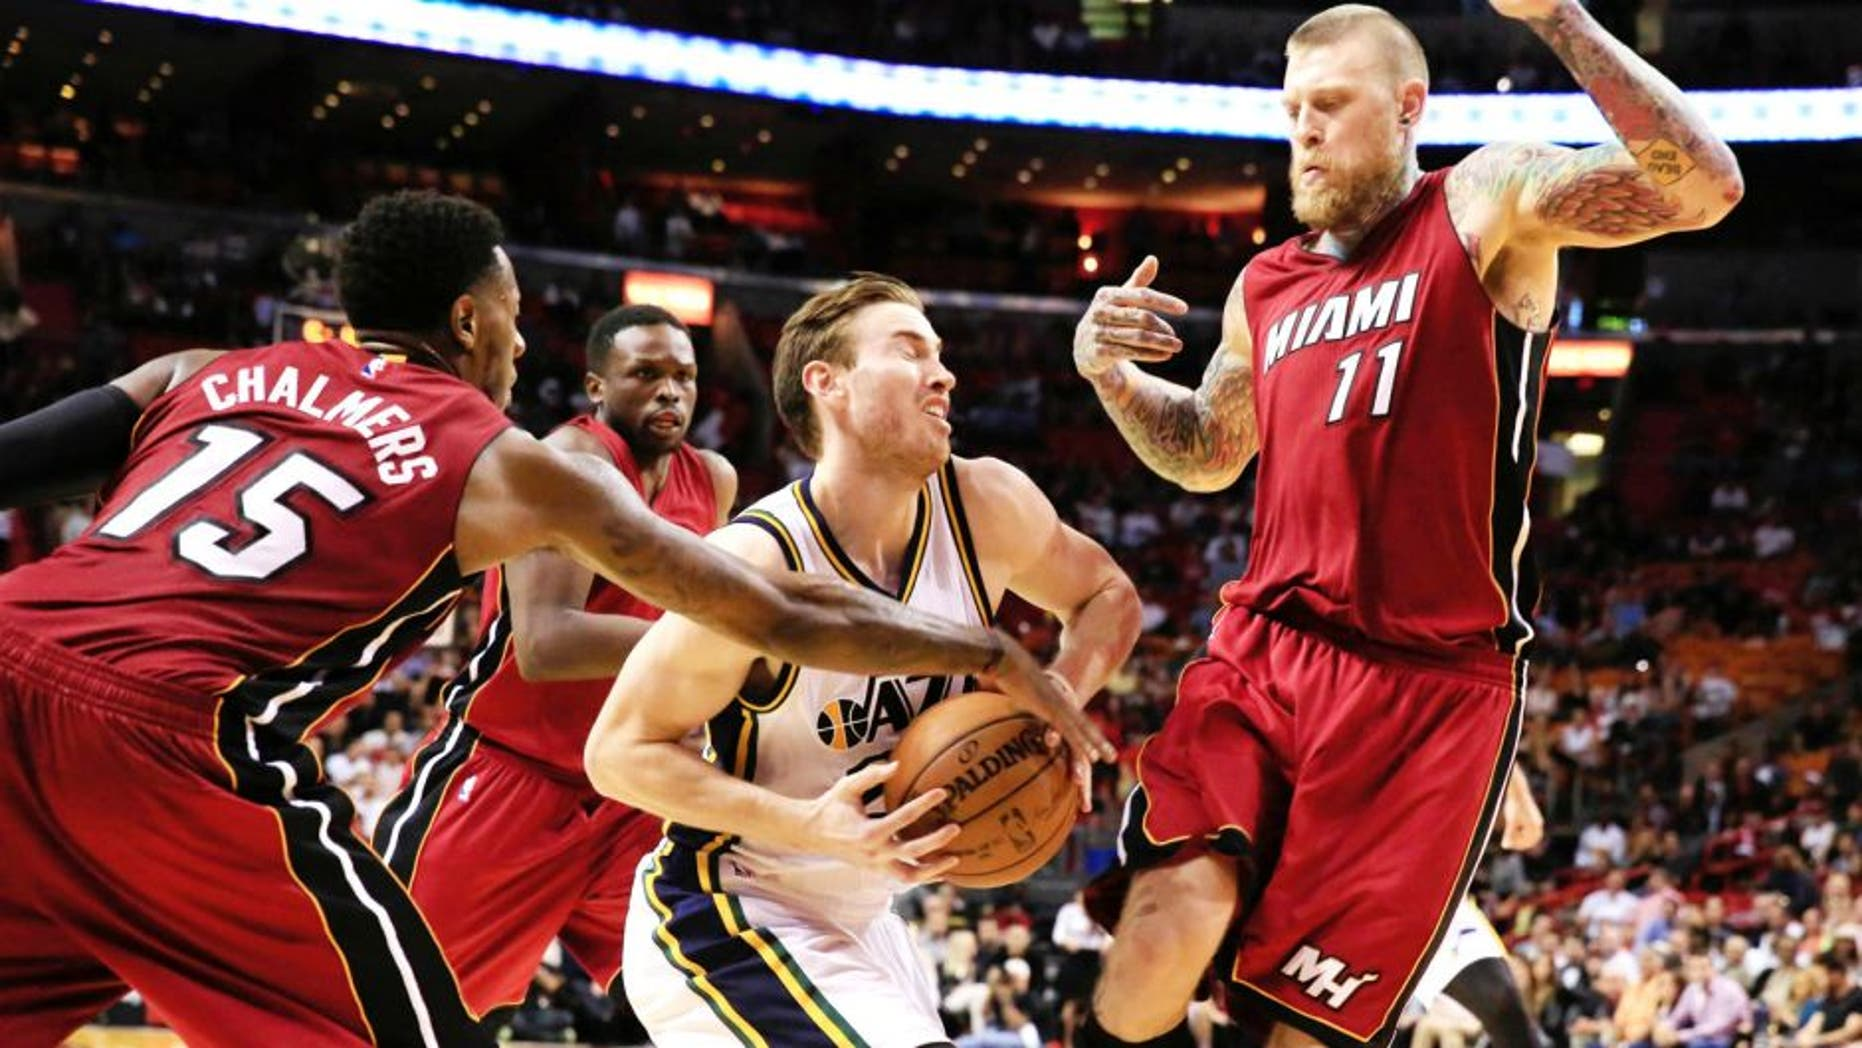 Dec 17, 2014; Miami, FL, USA; Utah Jazz forward Gordon Hayward (20) is defended by Miami Heat guard Mario Chalmers (15) and forward Chris Andersen (11) in the second half at American Airlines Arena. The Jazz won 105-87. Mandatory Credit: Robert Mayer-USA TODAY Sports